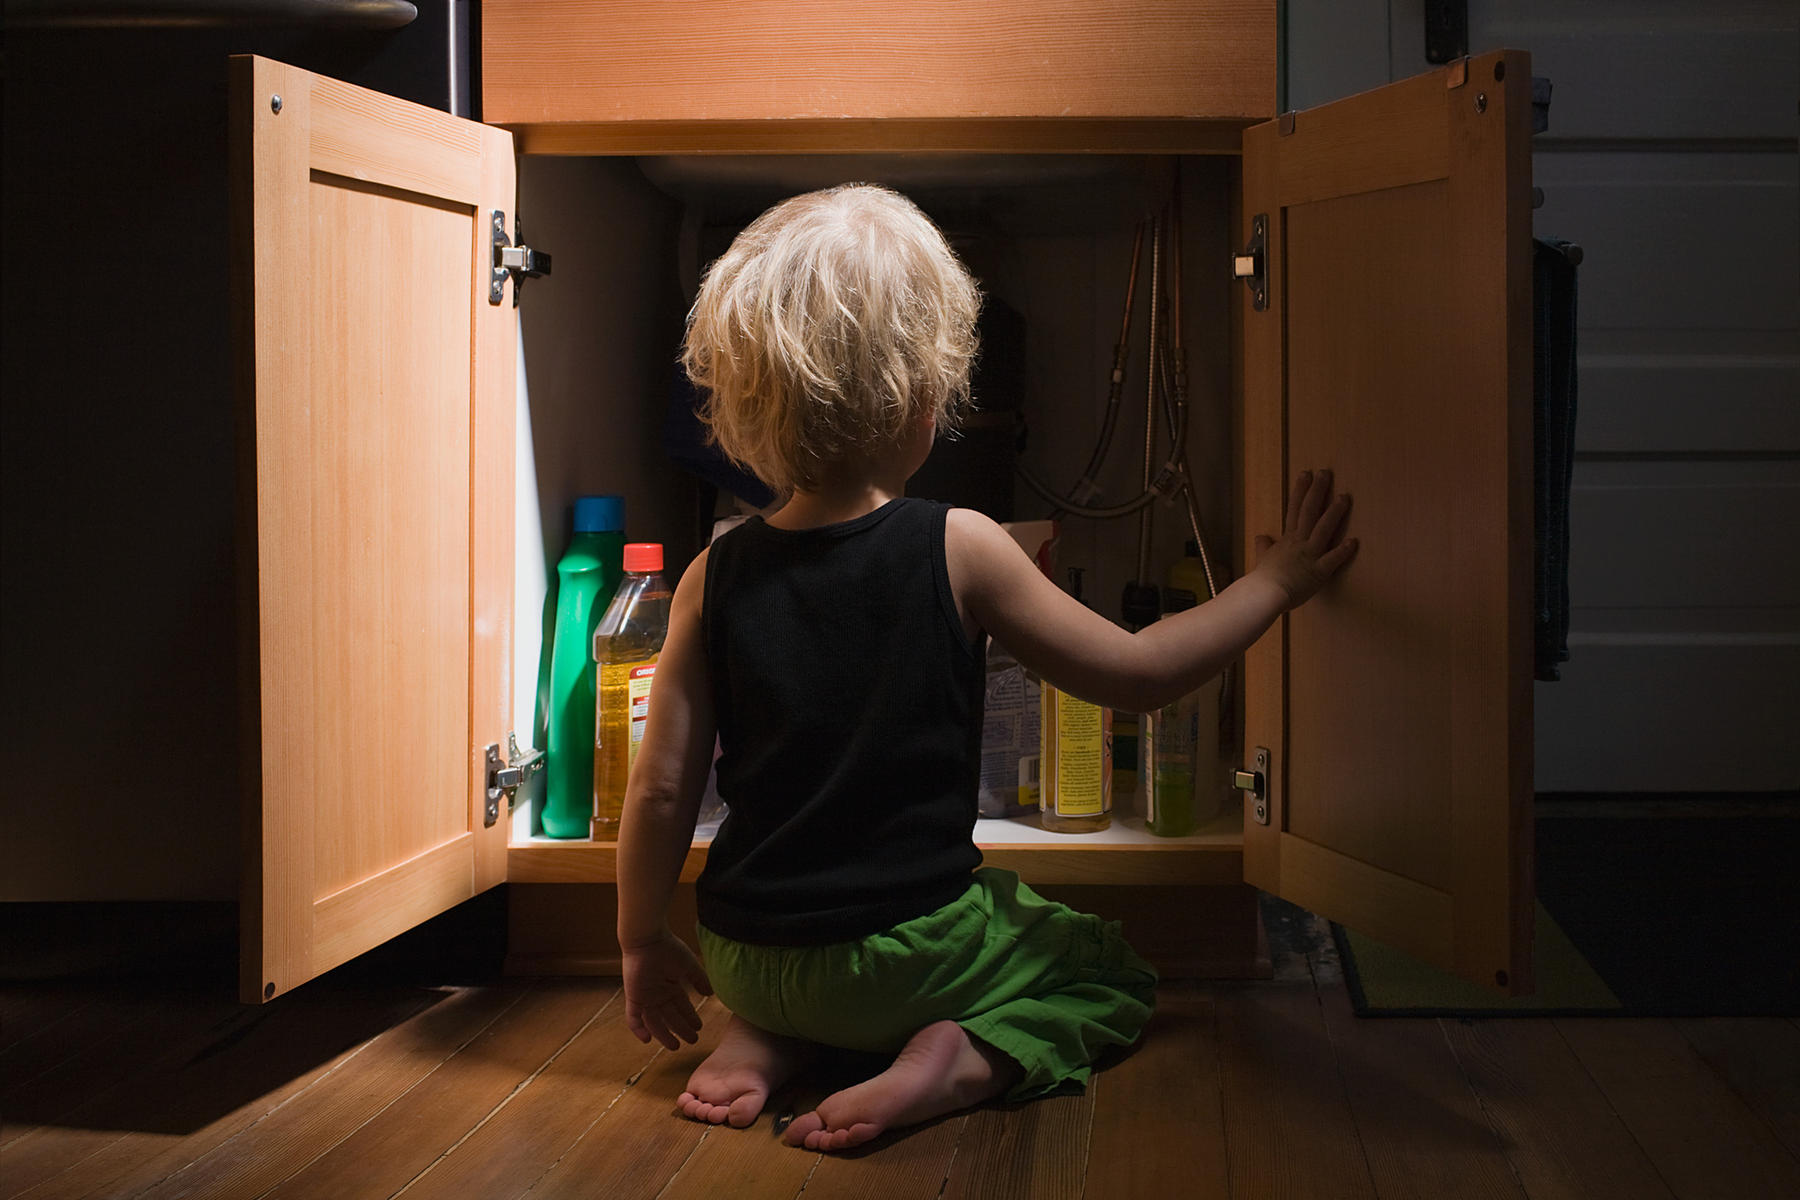 5 Poisoning Hazards for Kids You May Be Overlooking